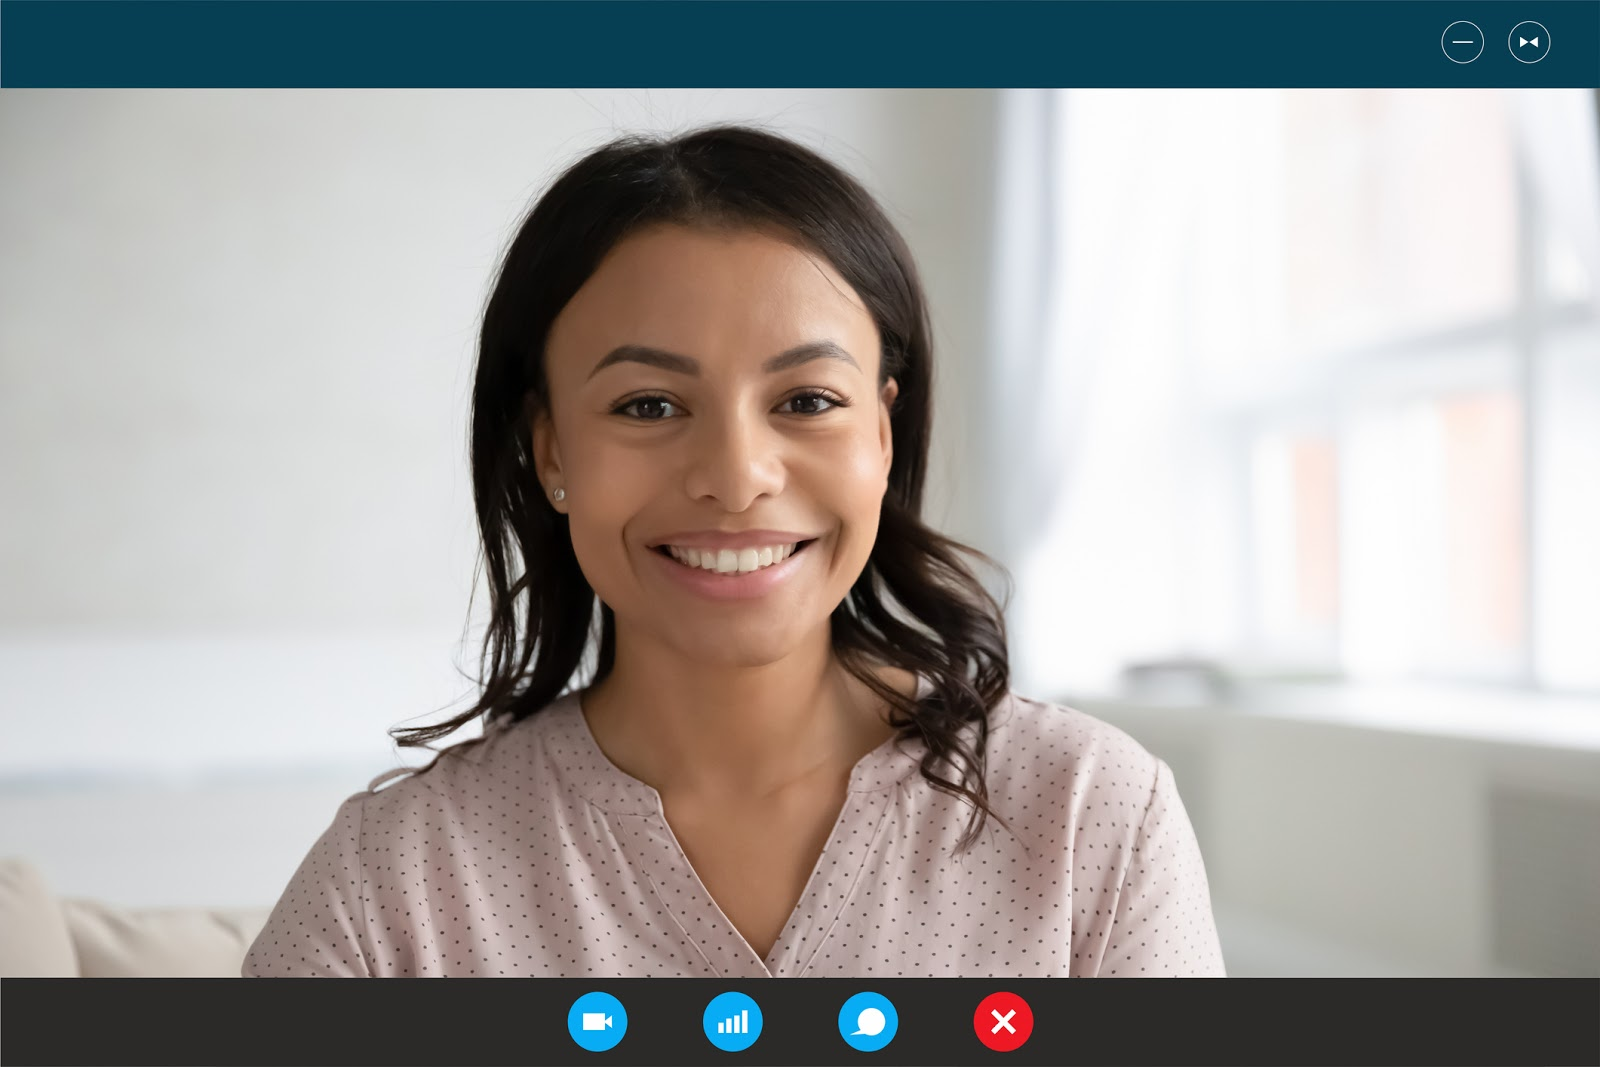 Headshot portrait screen application view of happy African American young woman speak talk on video call on computer, smiling biracial female have pleasant Webcam conference online on laptop